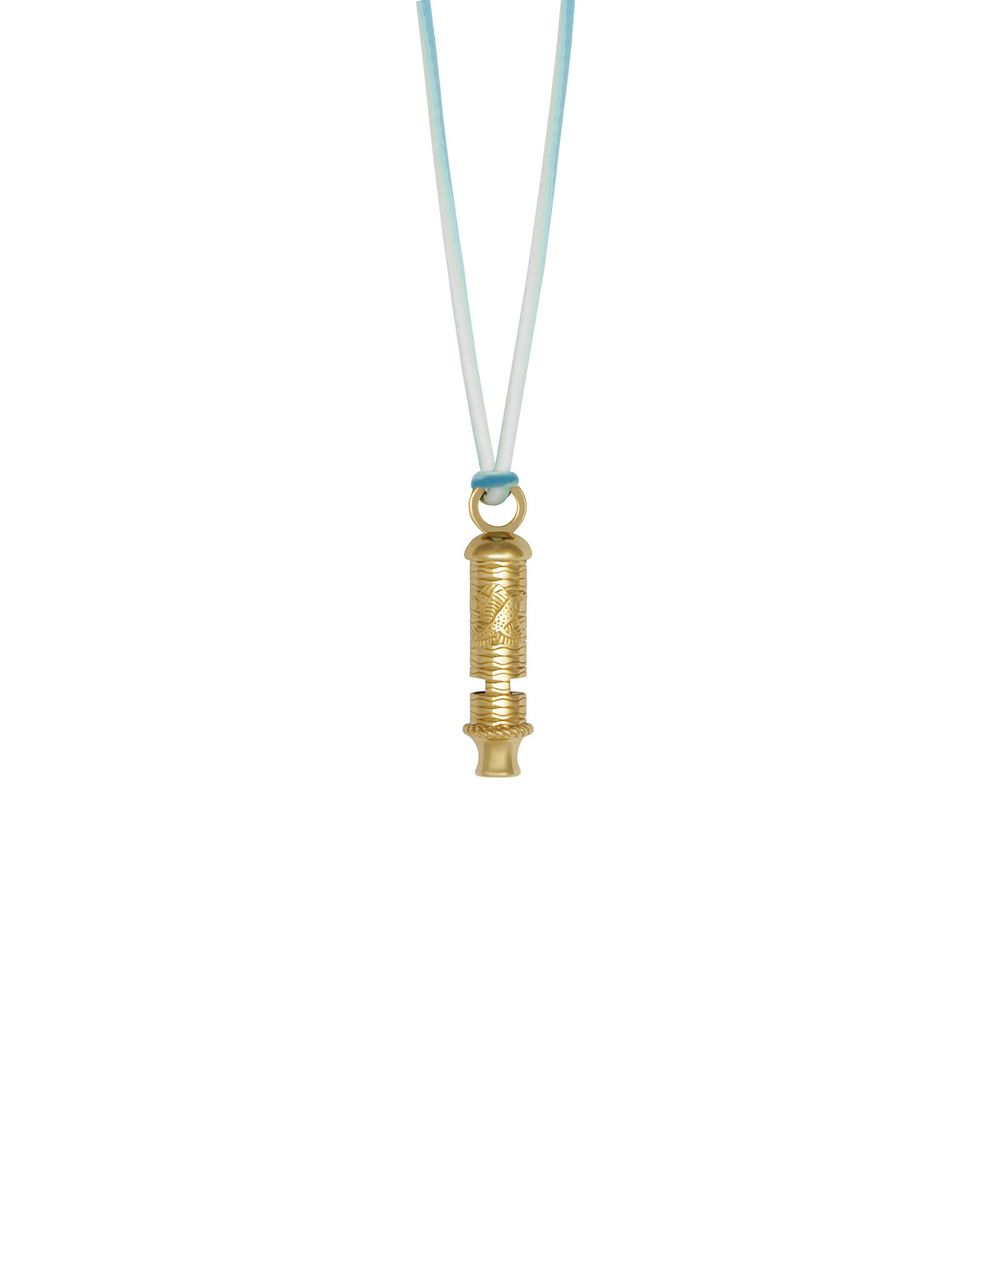 WHISTLE NECKLACE - Lanvin